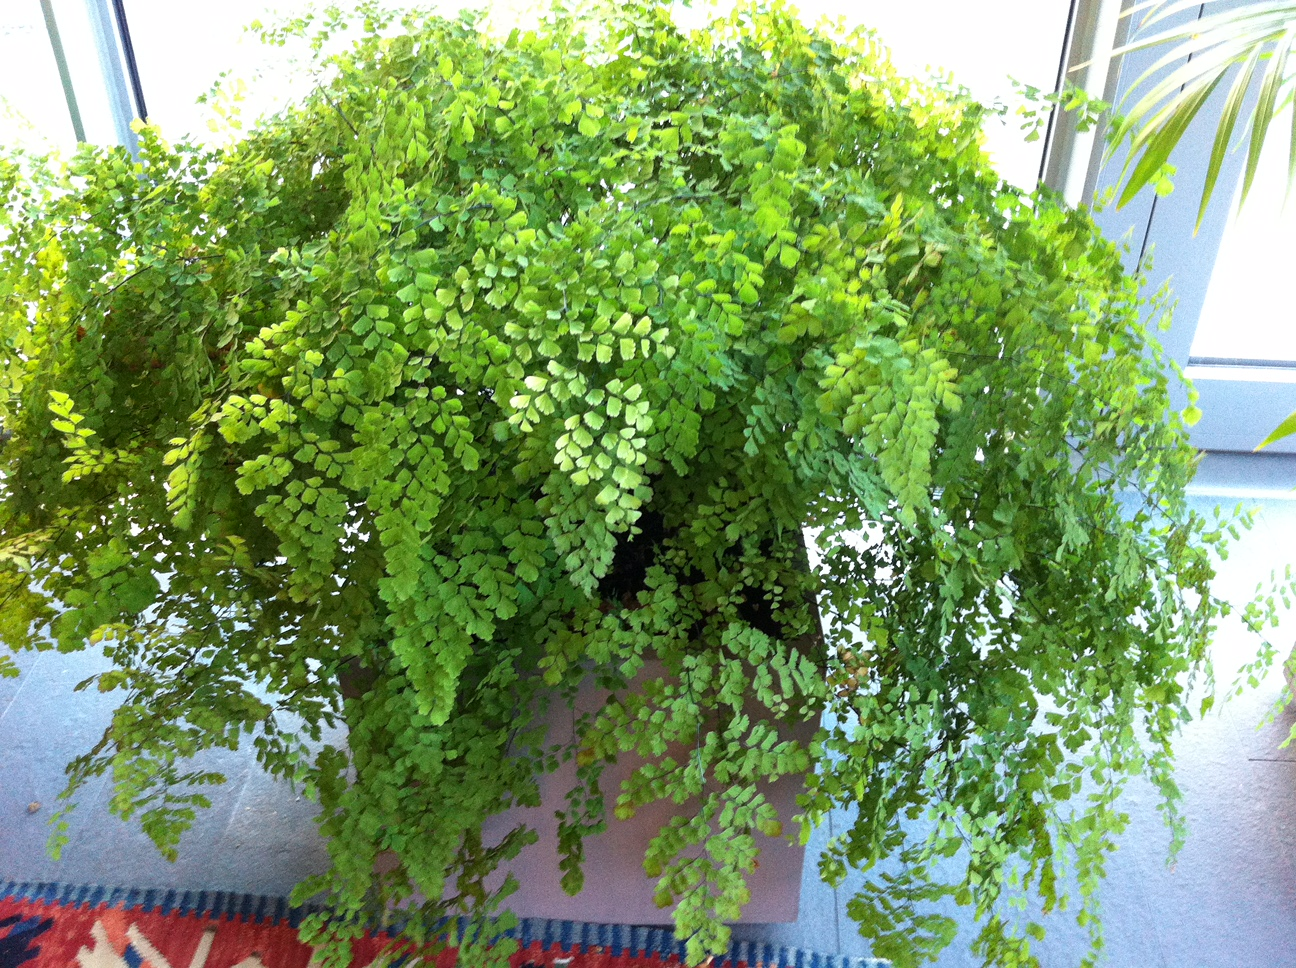 The Maidenhair Fern:  one of the most delicate and lovely of houseplants. Loves shade, moist, rich and acidic soil. Be careful not to overwater.